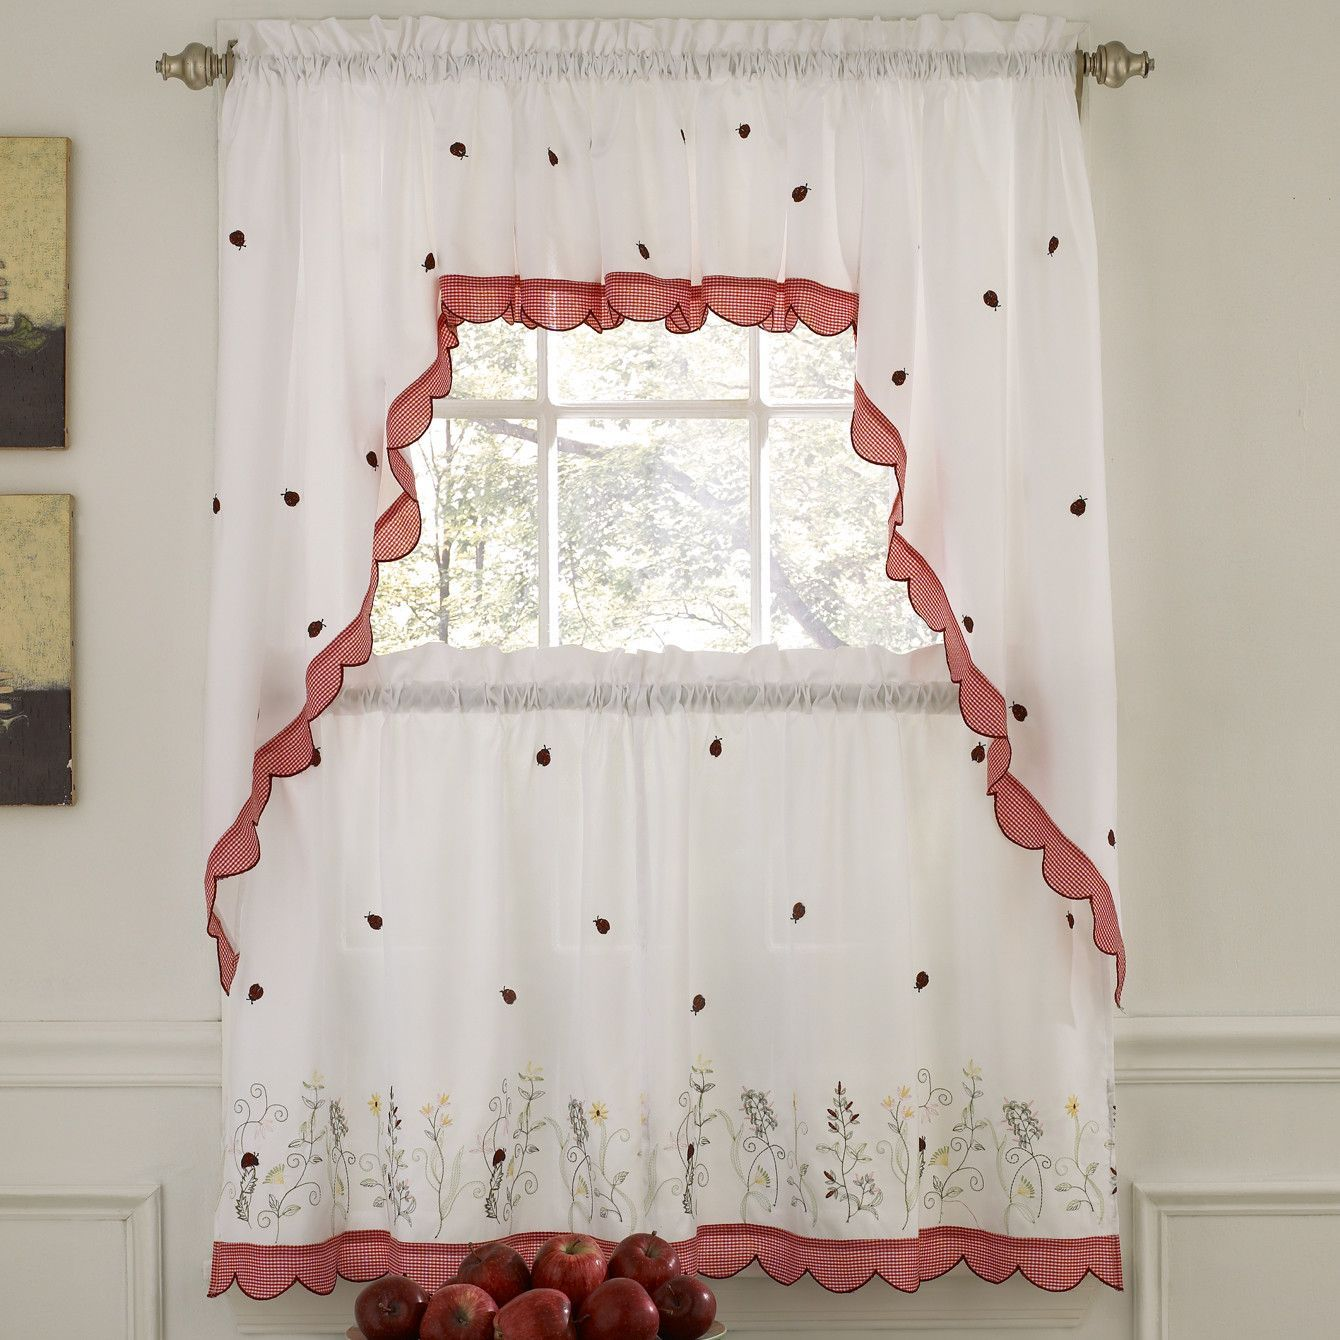 Embroidered ladybug meadow kitchen curtain valance kitchen